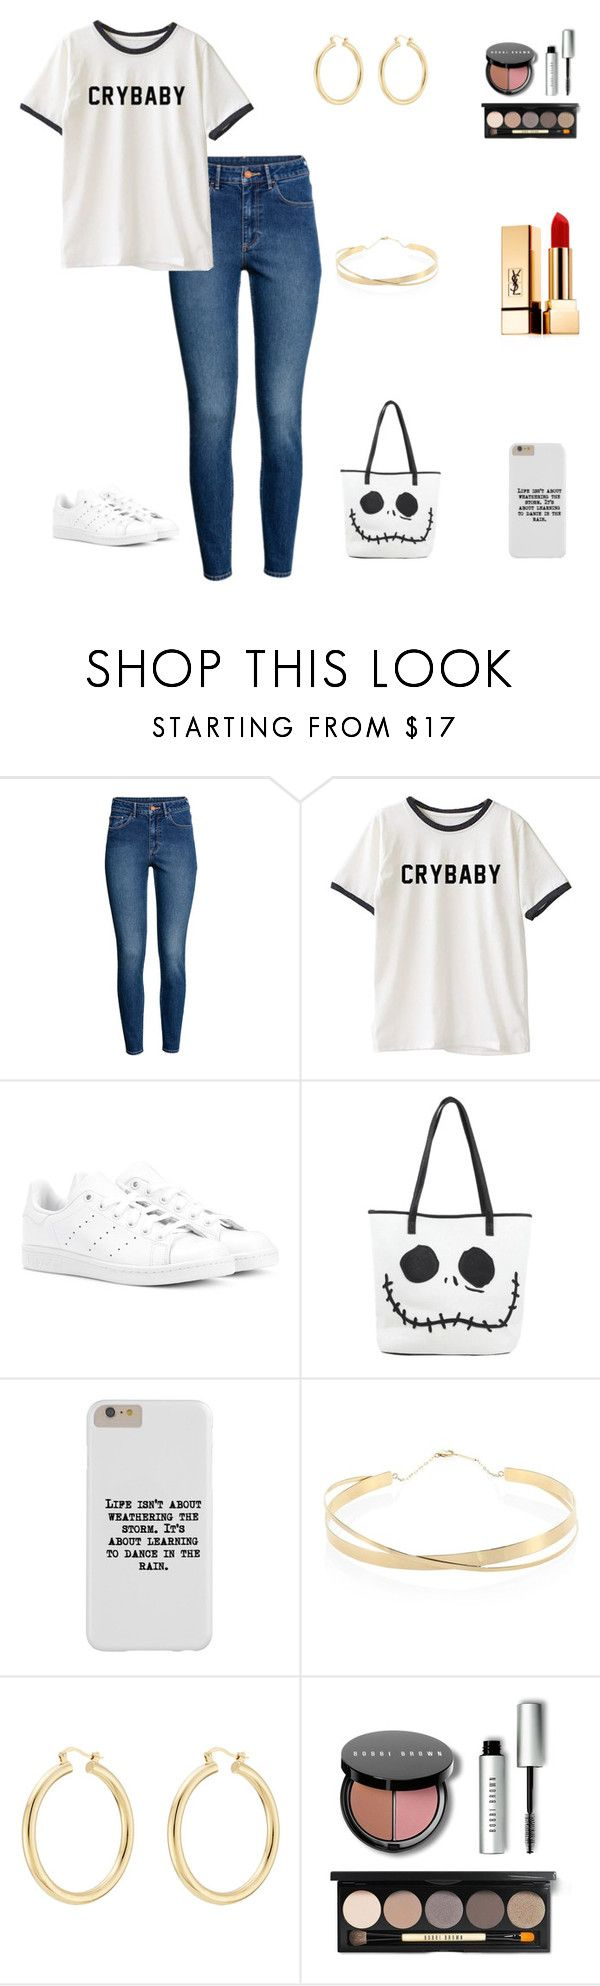 """""""Untitled #59"""" by marelyn03 on Polyvore featuring H&M, adidas Originals, Lana Jewelry, Isabel Marant, Bobbi Brown Cosmetics and Yves Saint Laurent"""